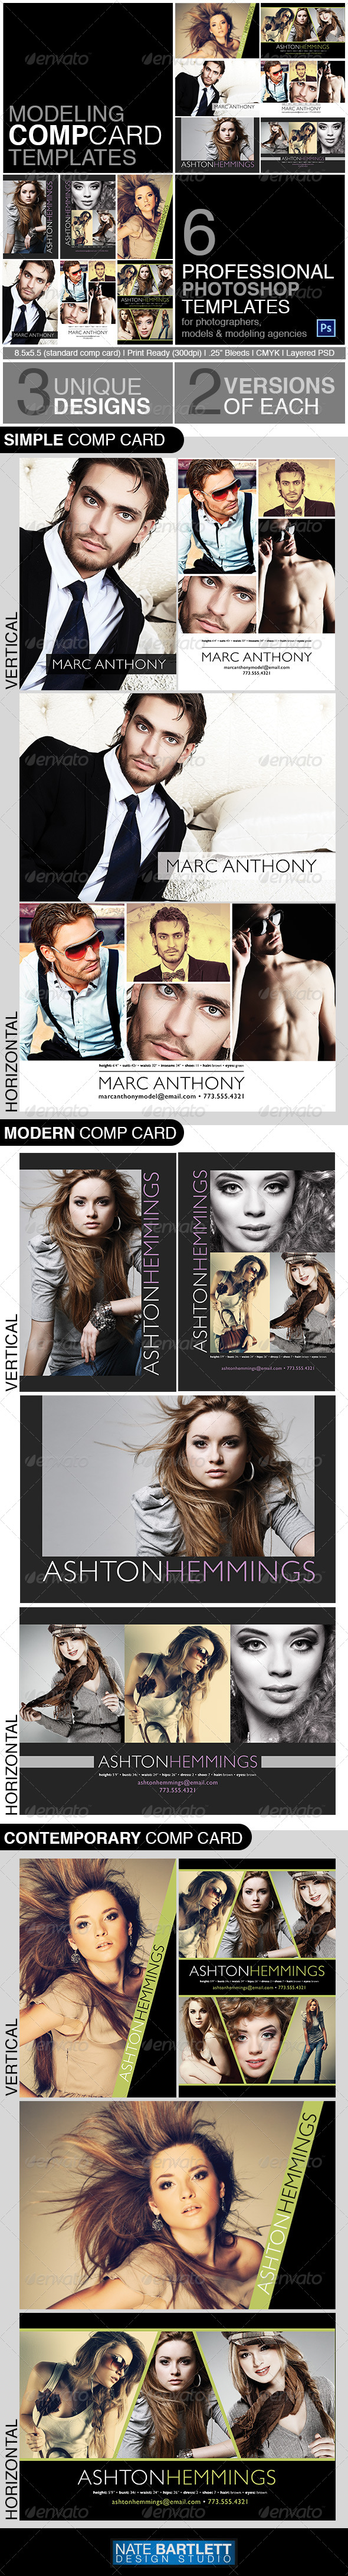 GraphicRiver Model Comp Card Template Kit 3926459